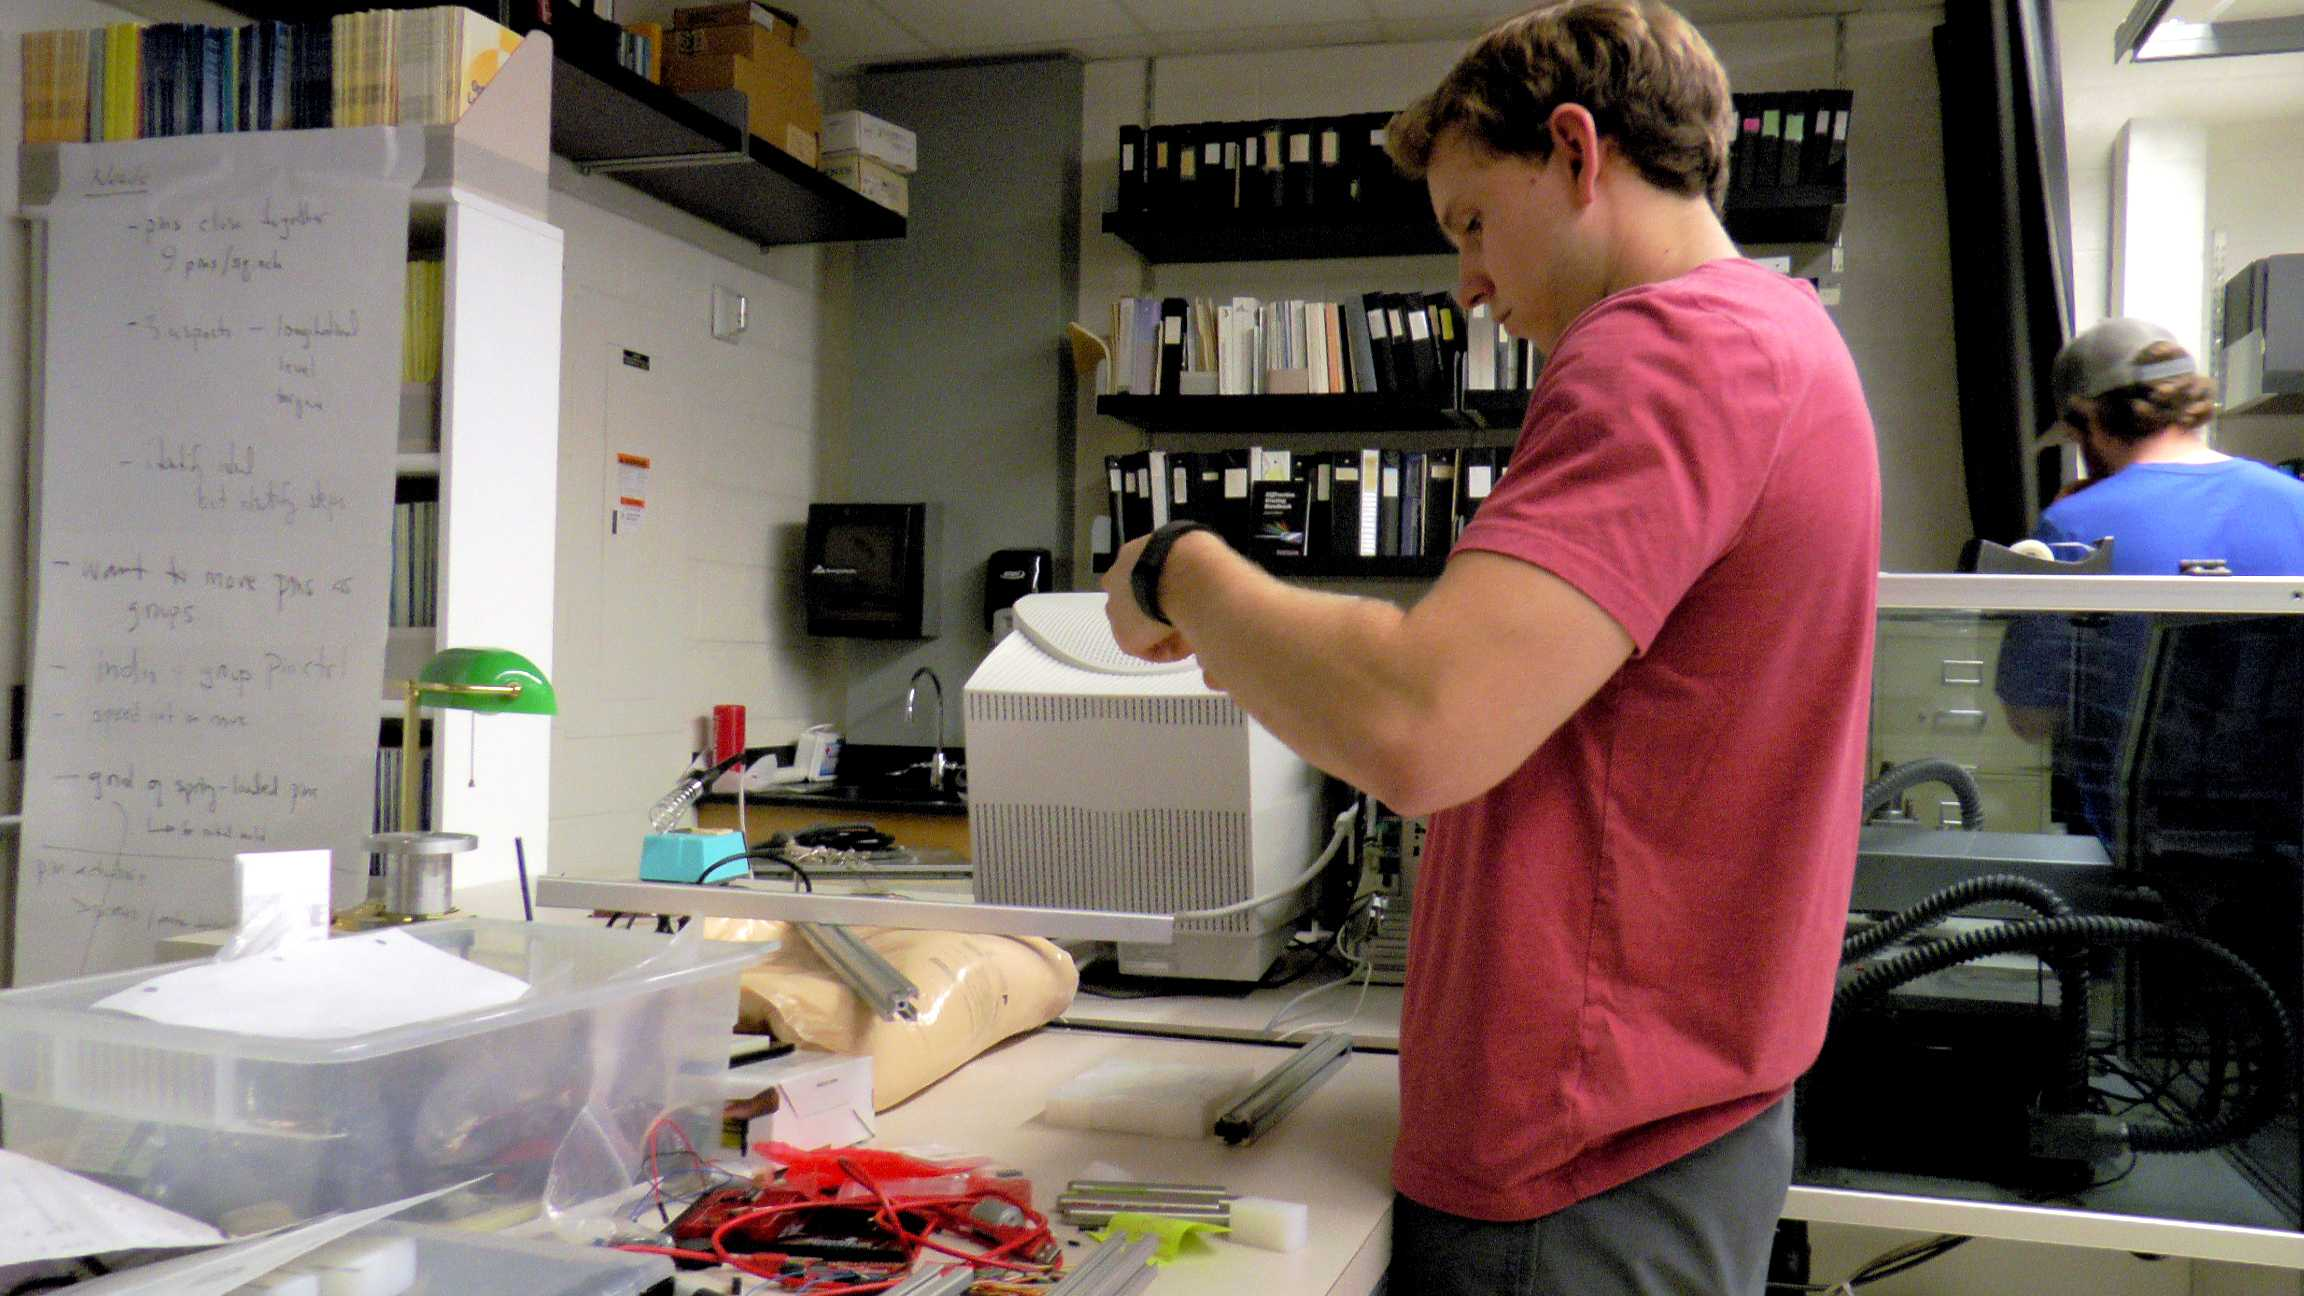 Nathan Loewen received a grant to fund a research project and will present his work at the Student Research Symposium on Friday.